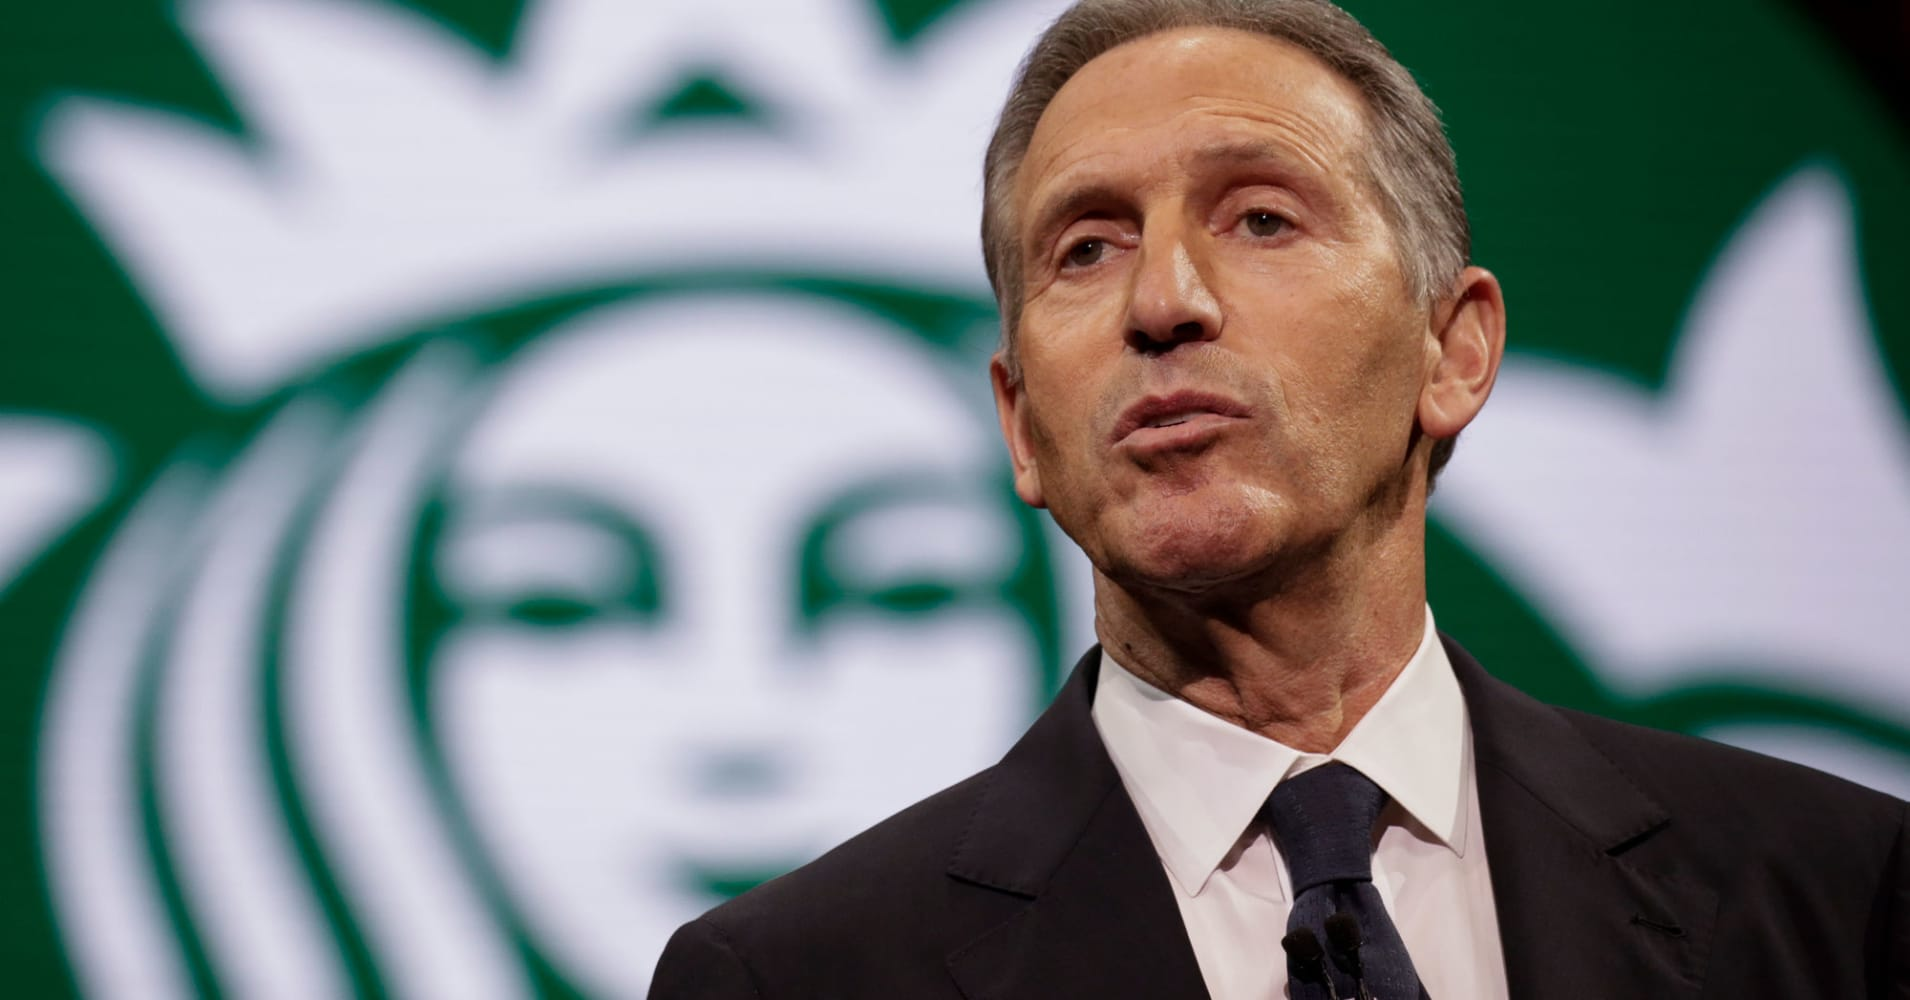 Democratic super PAC unleashes wave of opposition research against Howard Schultz